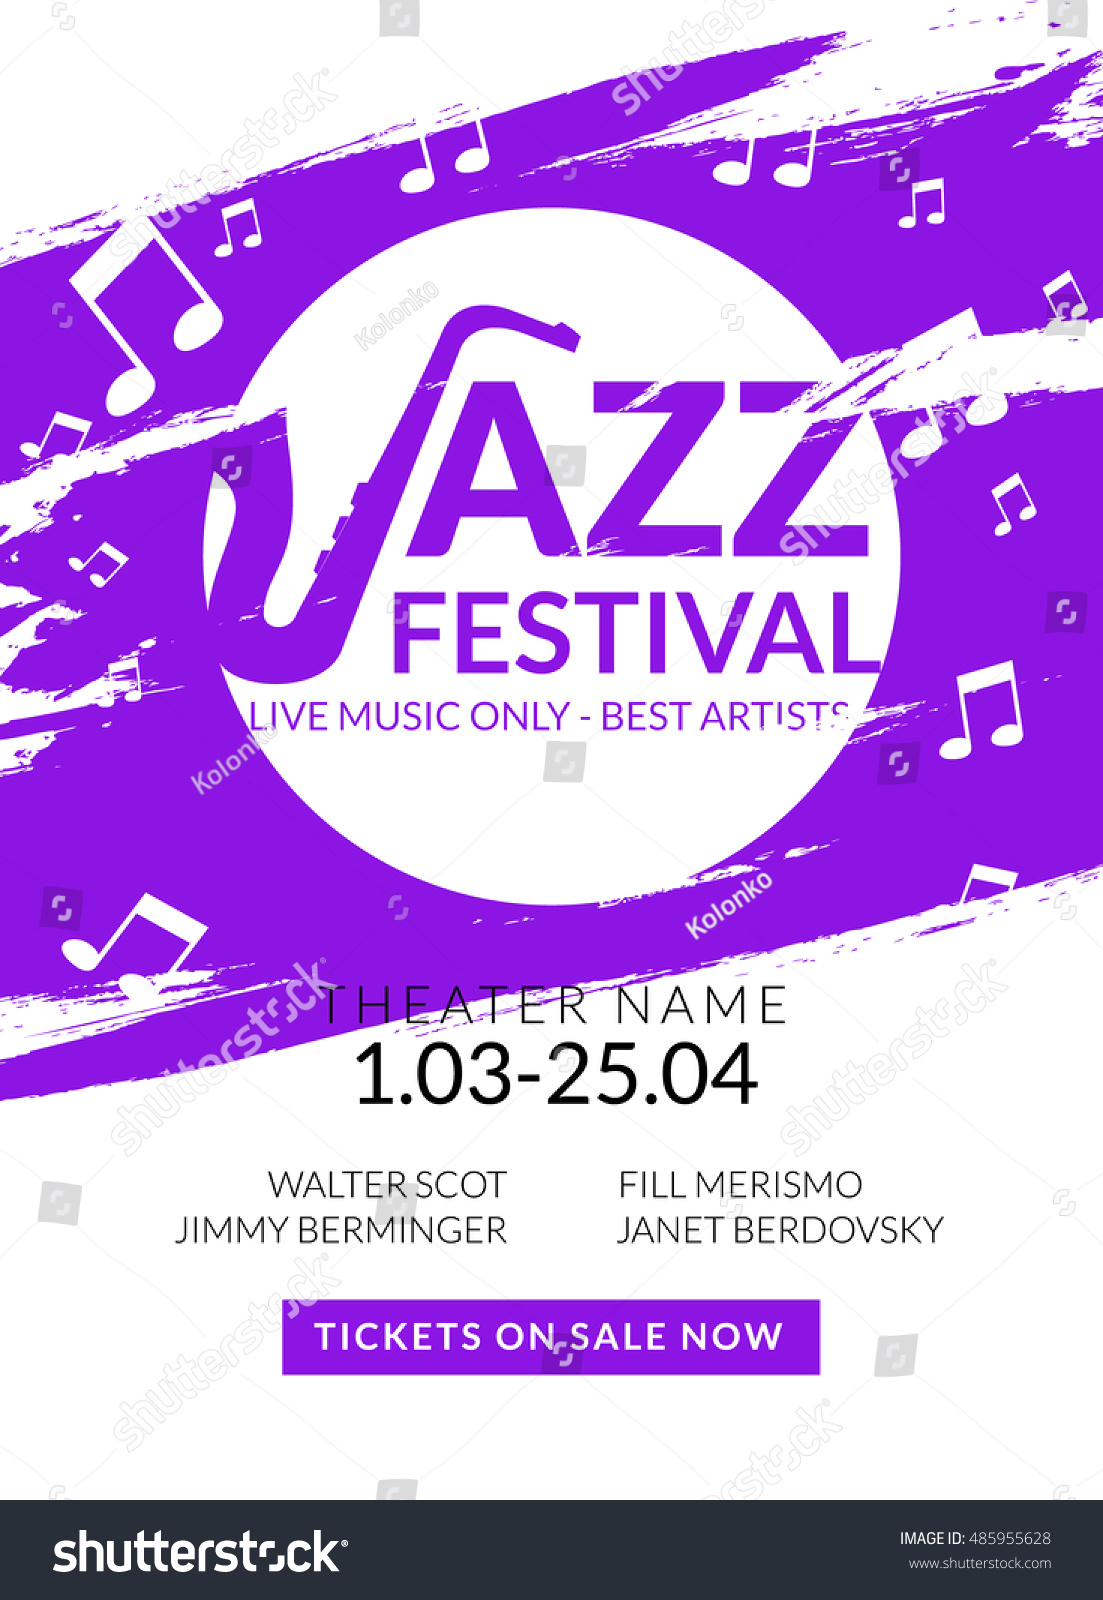 Vector Musical Flyer Jazz Festival Music Vector de stock485955628 ...